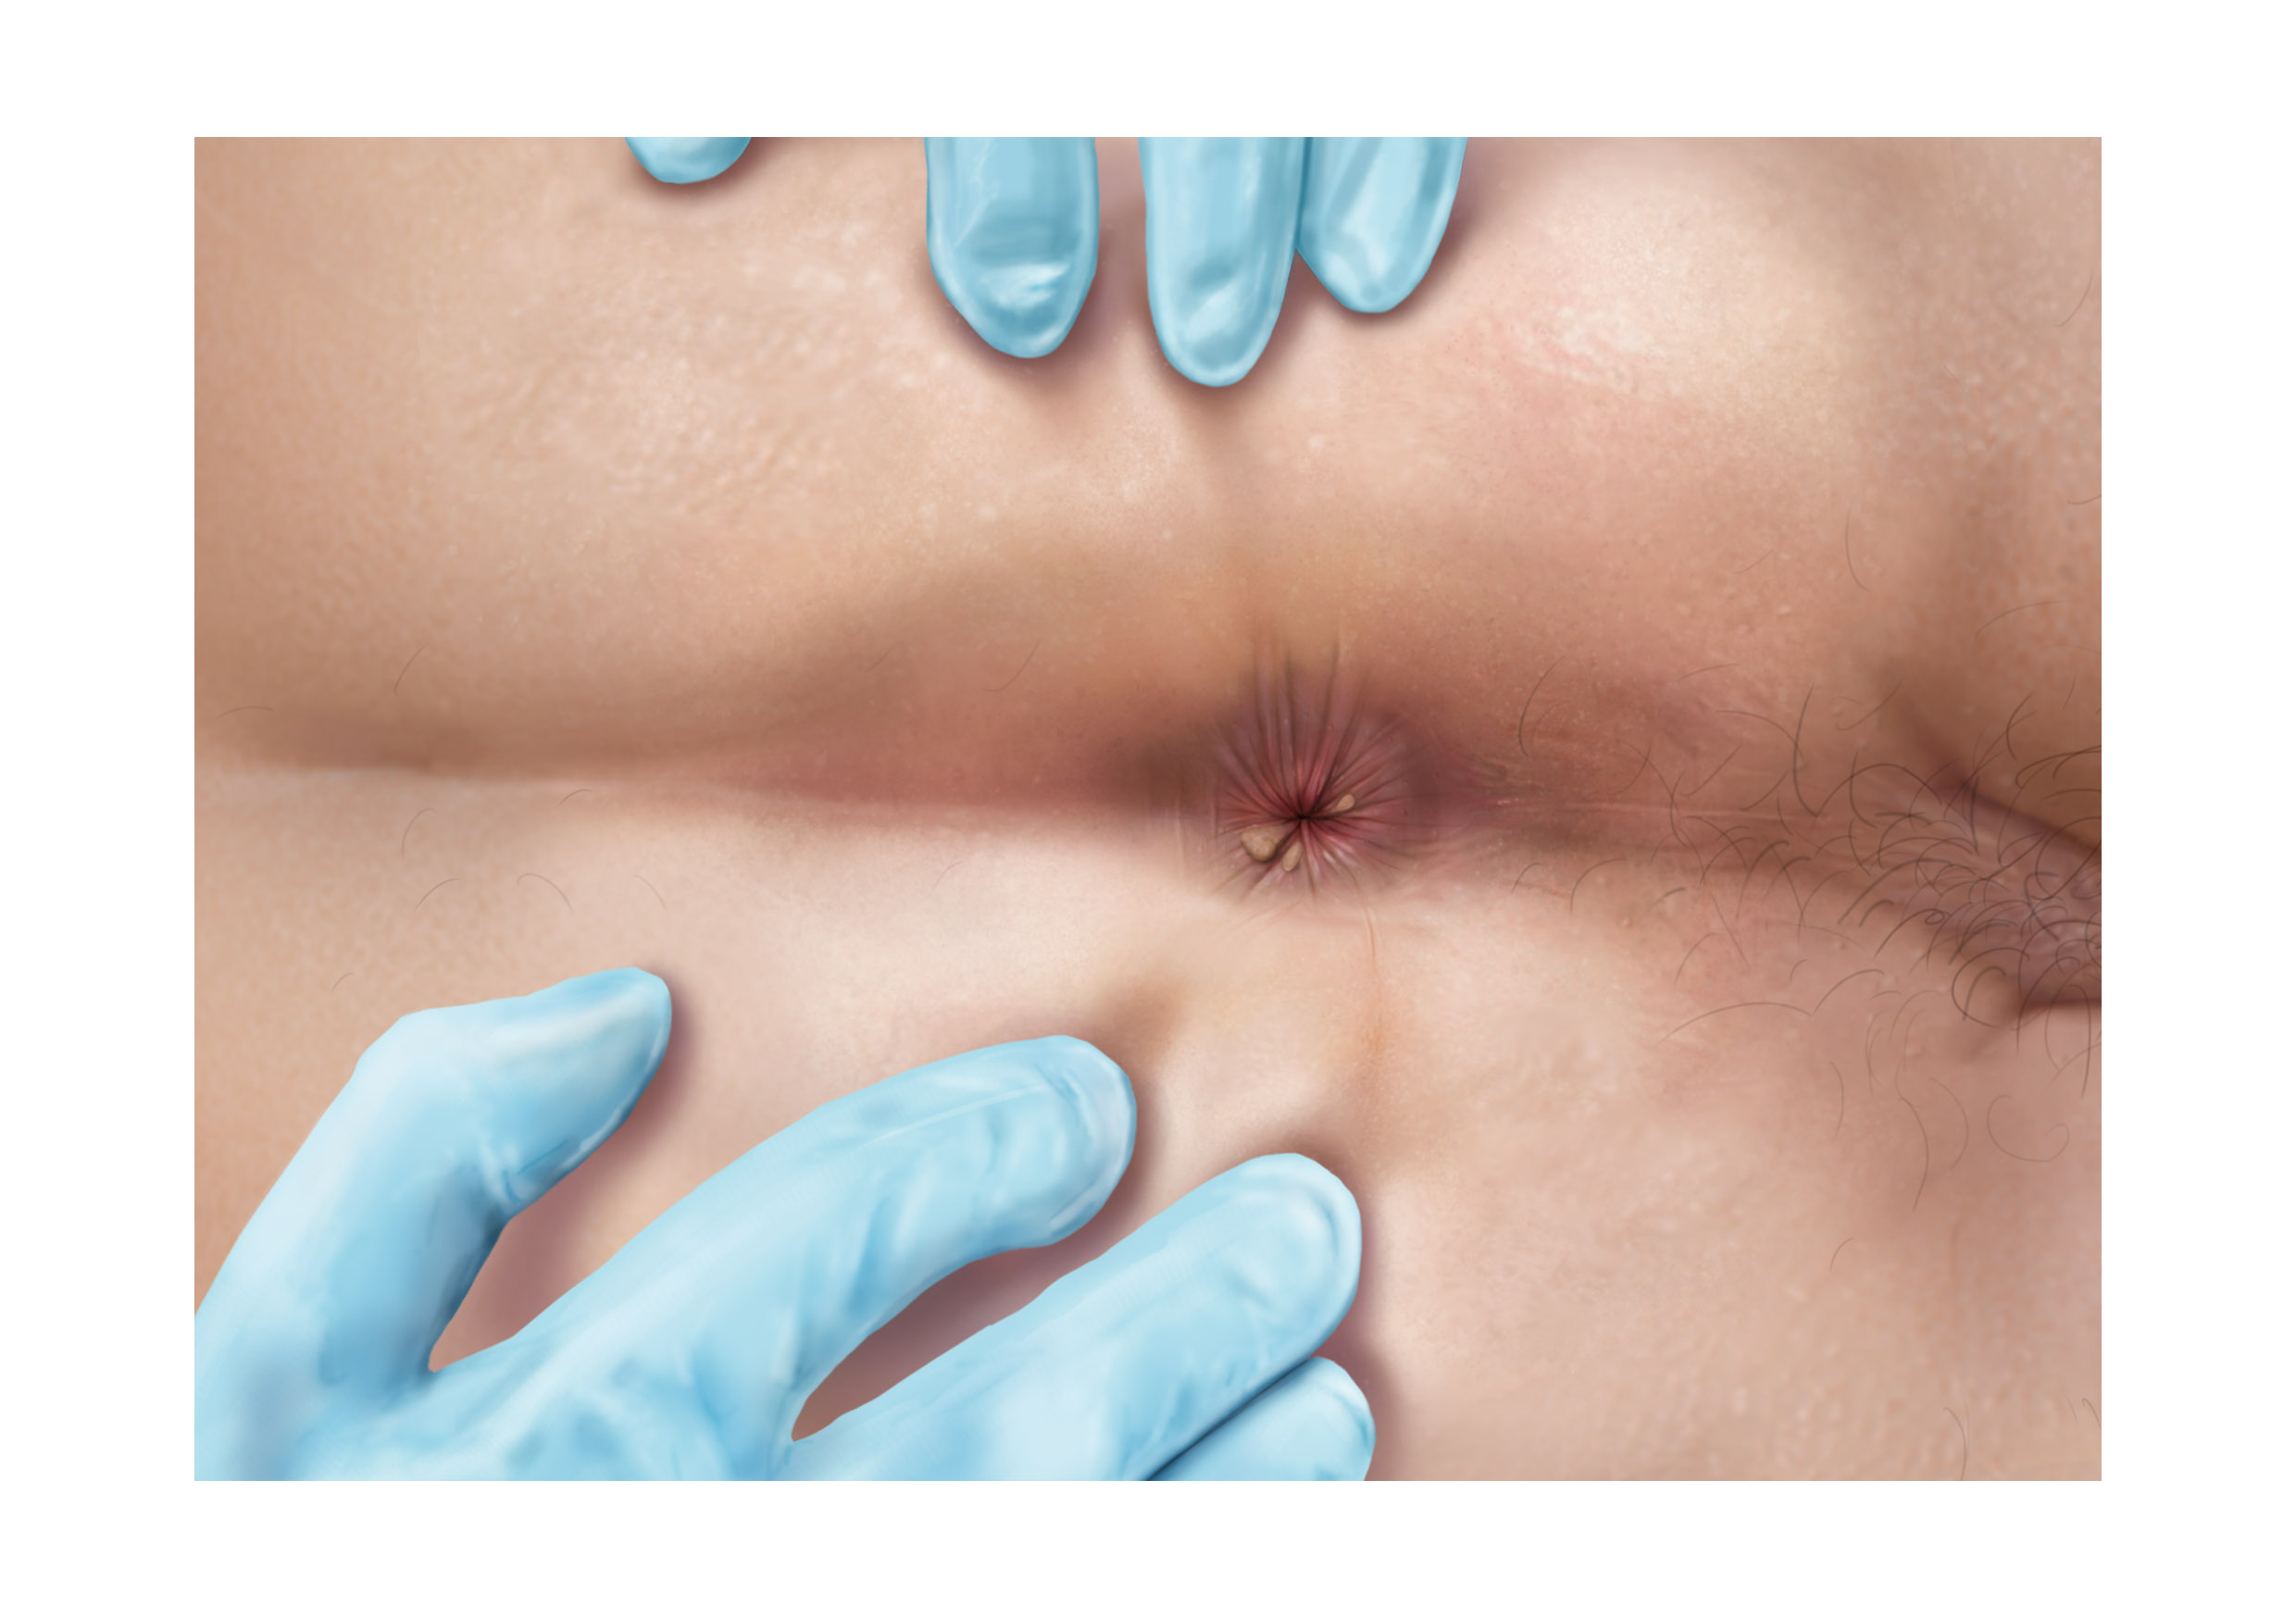 Illustrations of various diseases which can be found in rectal examinations - skin tags